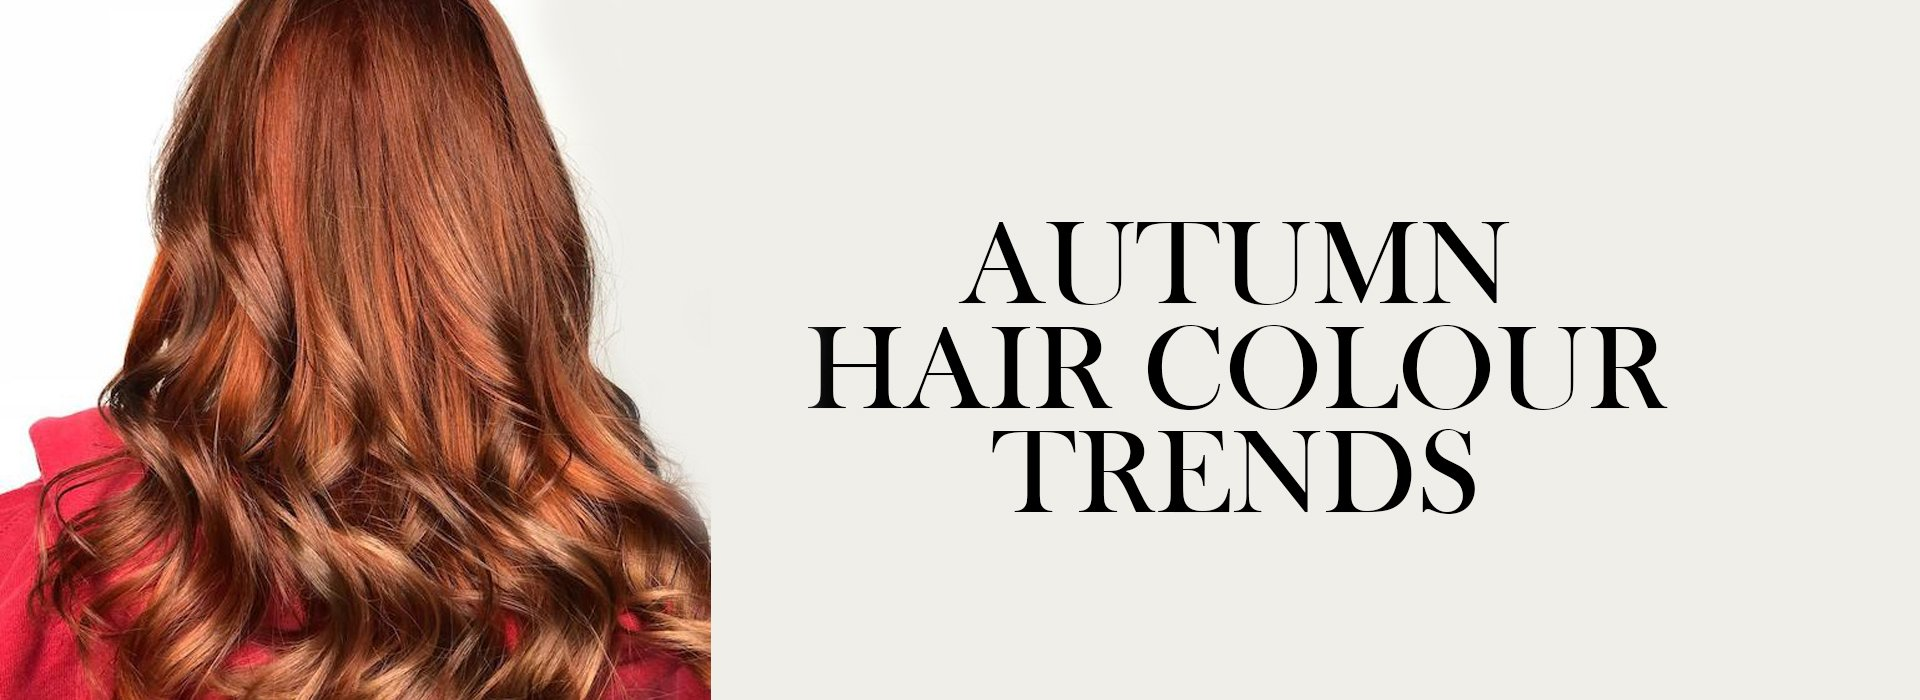 Autumn Hair Colour Trends Lore Hairdressing Salon in North Baddlesley